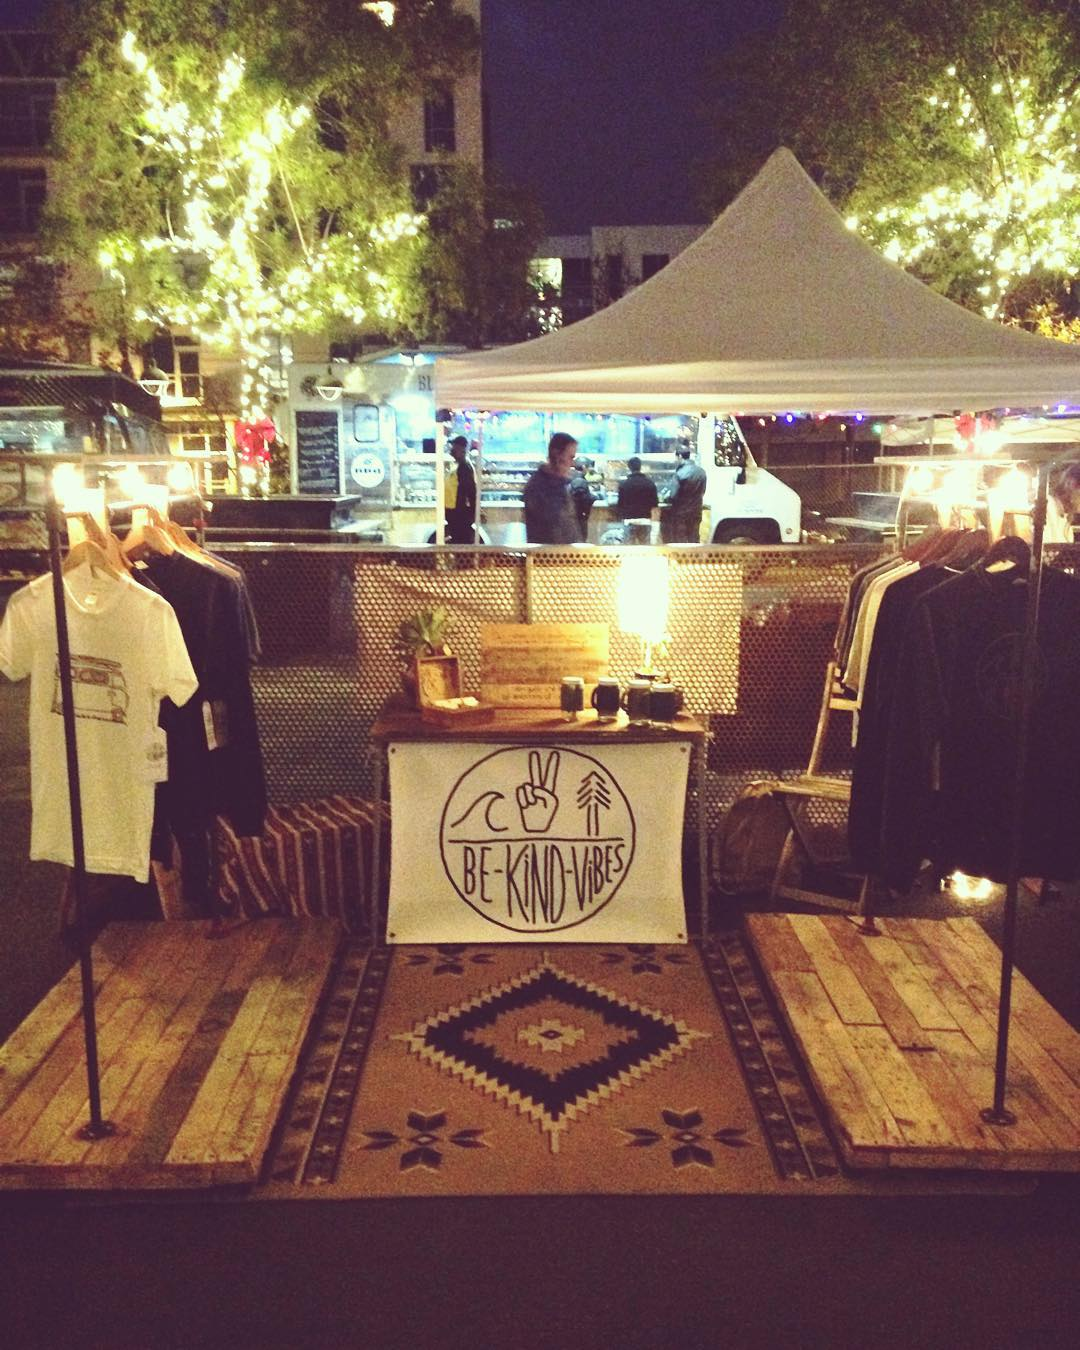 ~ Tribe Gathering ~  Night 2 @quartyardsd! We'll be here until 10pm. Swing by and have a pint with us while you're shopping green and local for the holidays. -------------------------------------------- #bekindvibes #bekindtribe #consciousadventurer